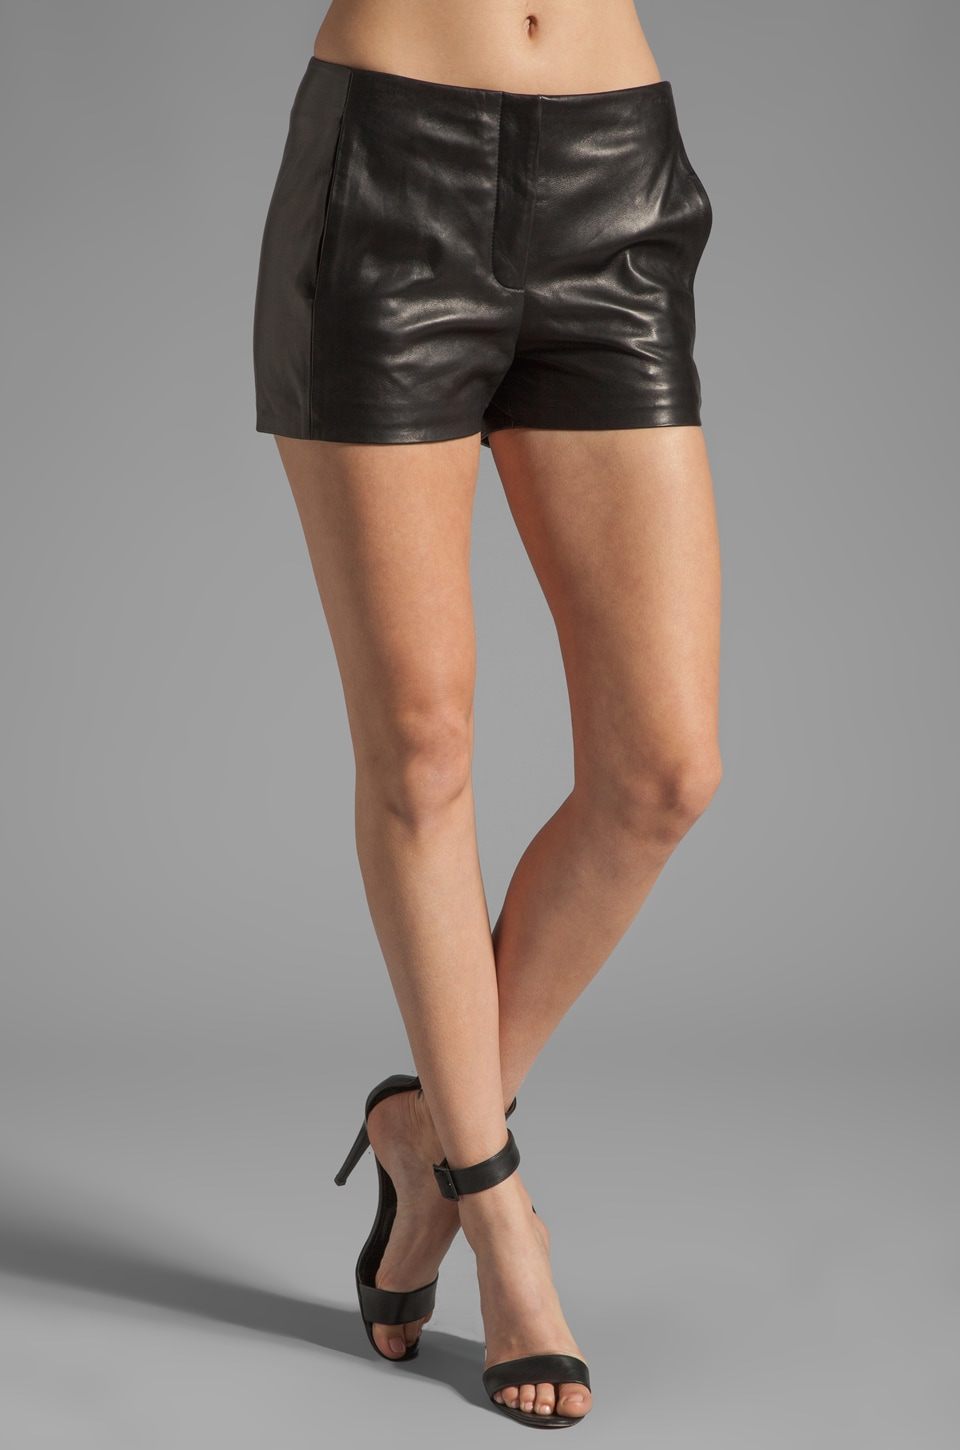 T by Alexander Wang Leather Waistbandless Short in Black